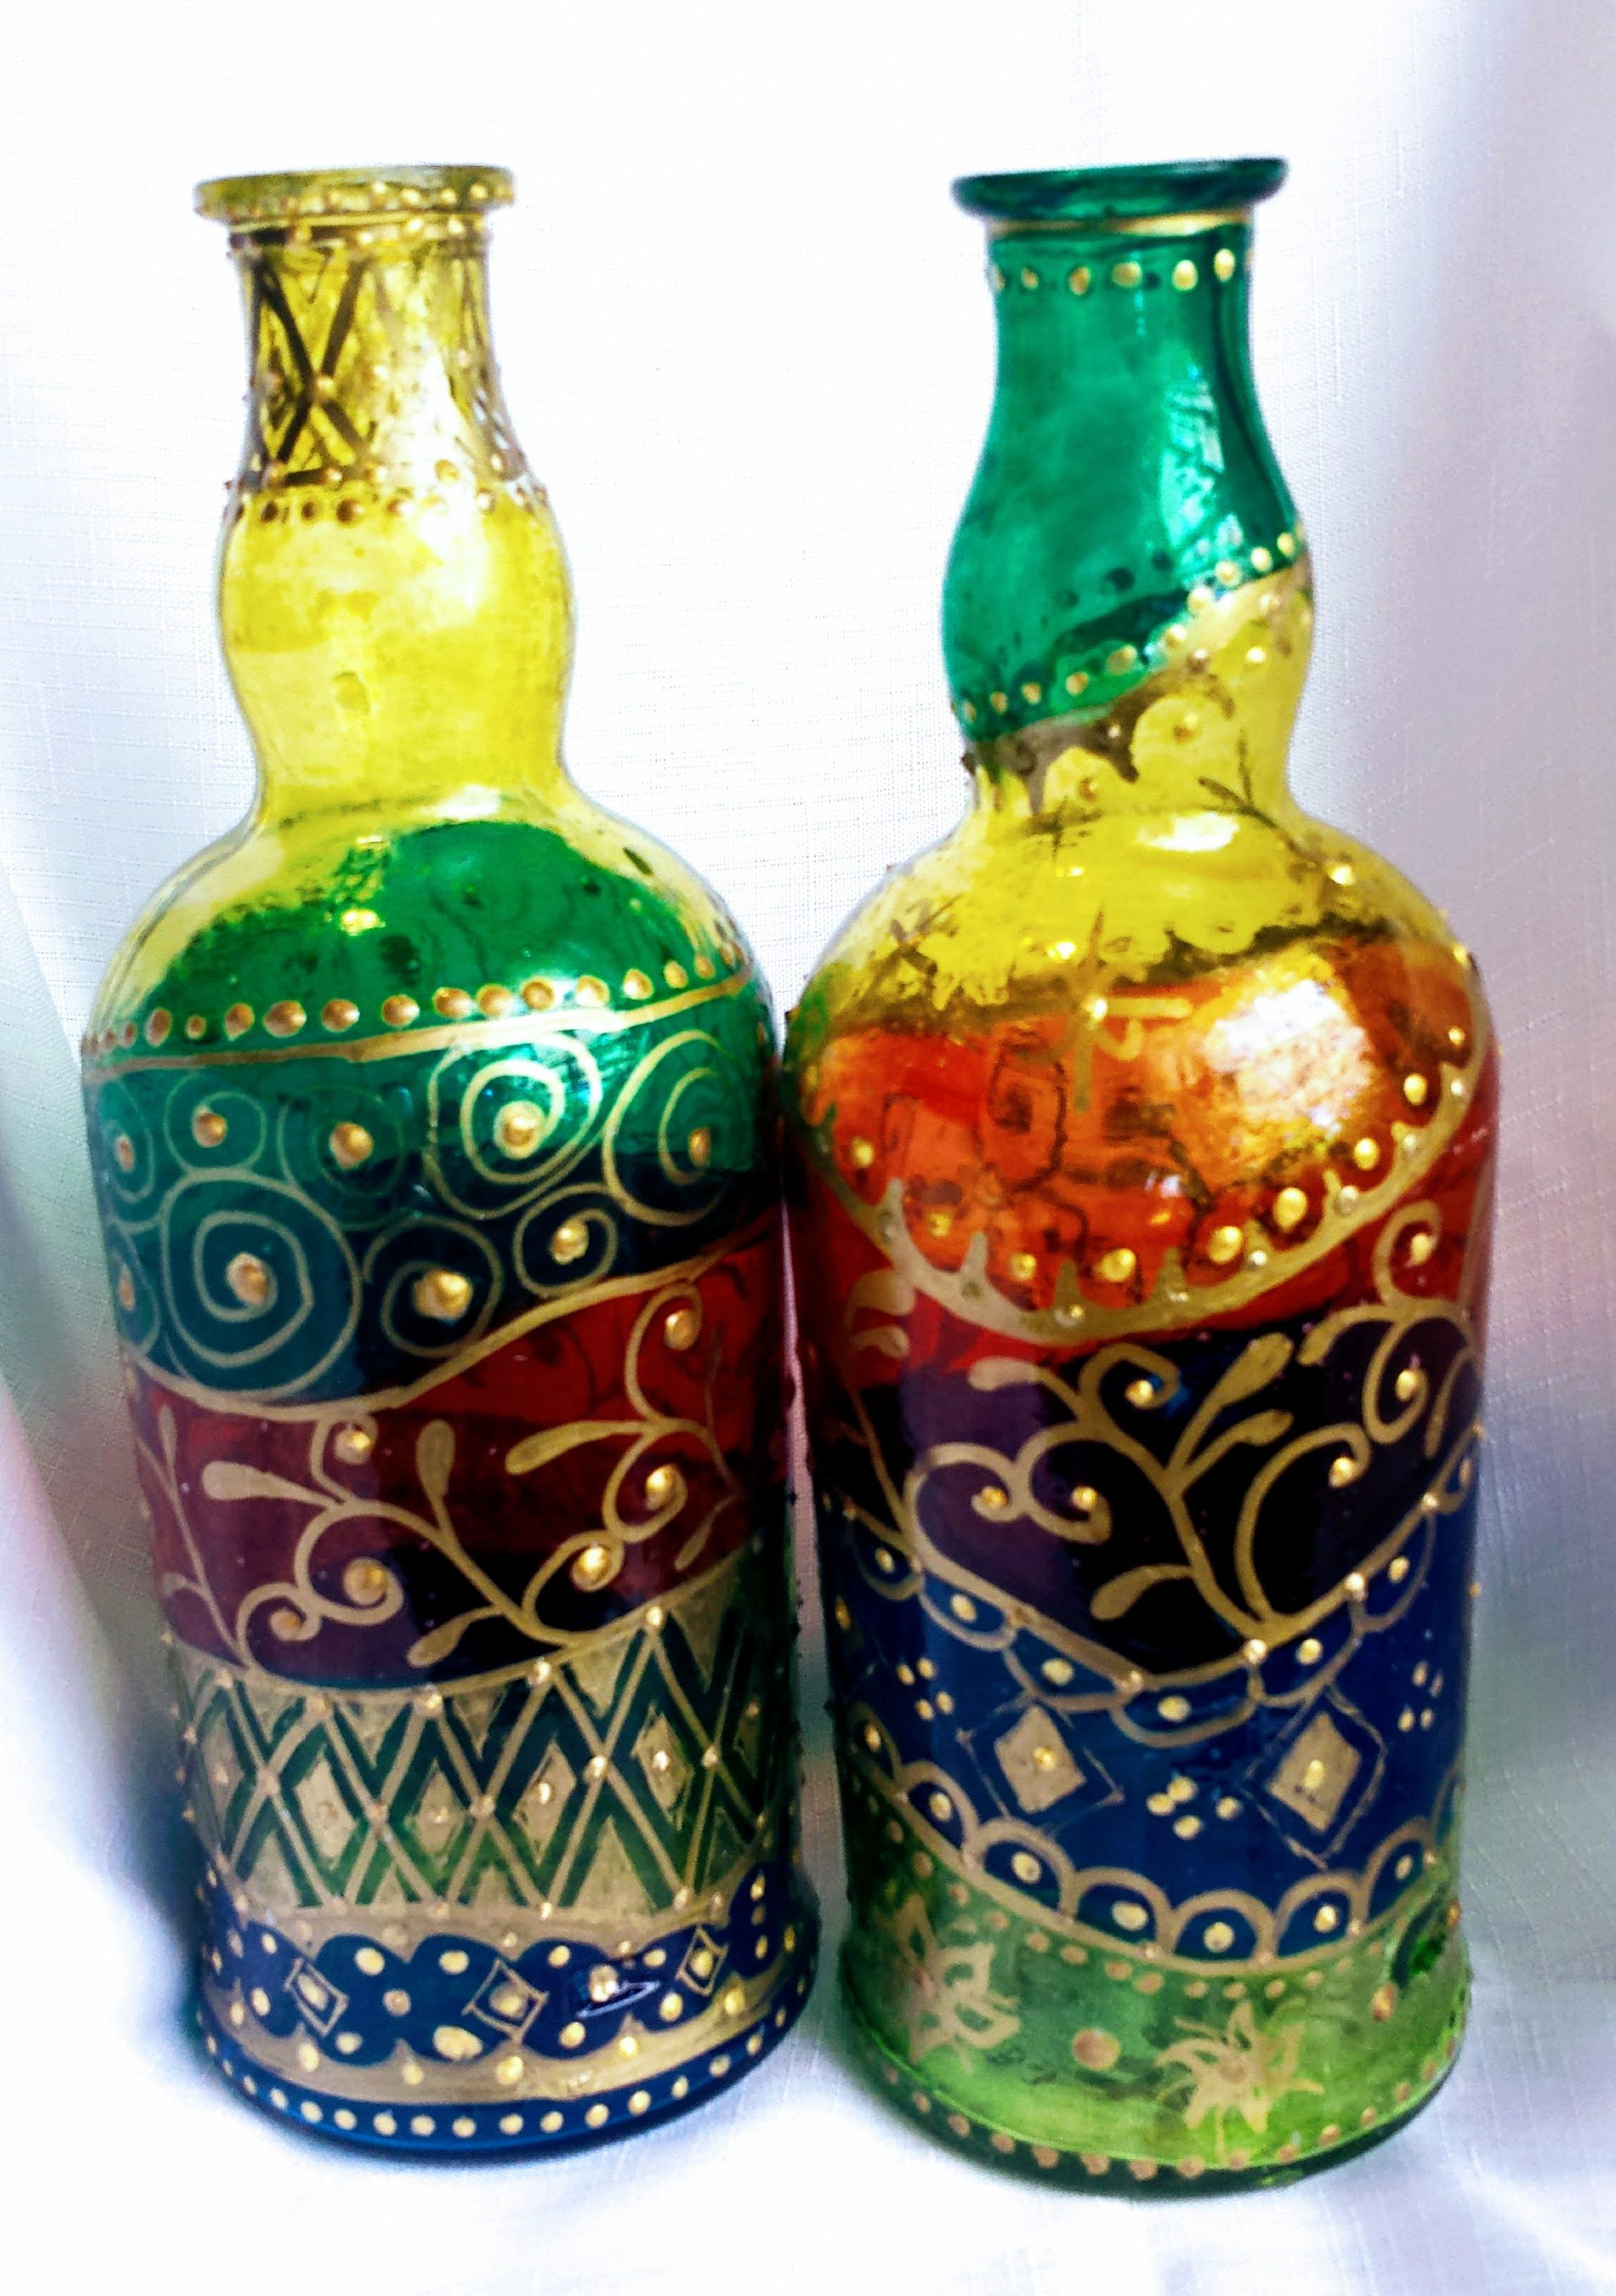 Glass Bottles Decorative Hand Painted Sealed Glass Bottlesdecorative Decanteroil Bottle